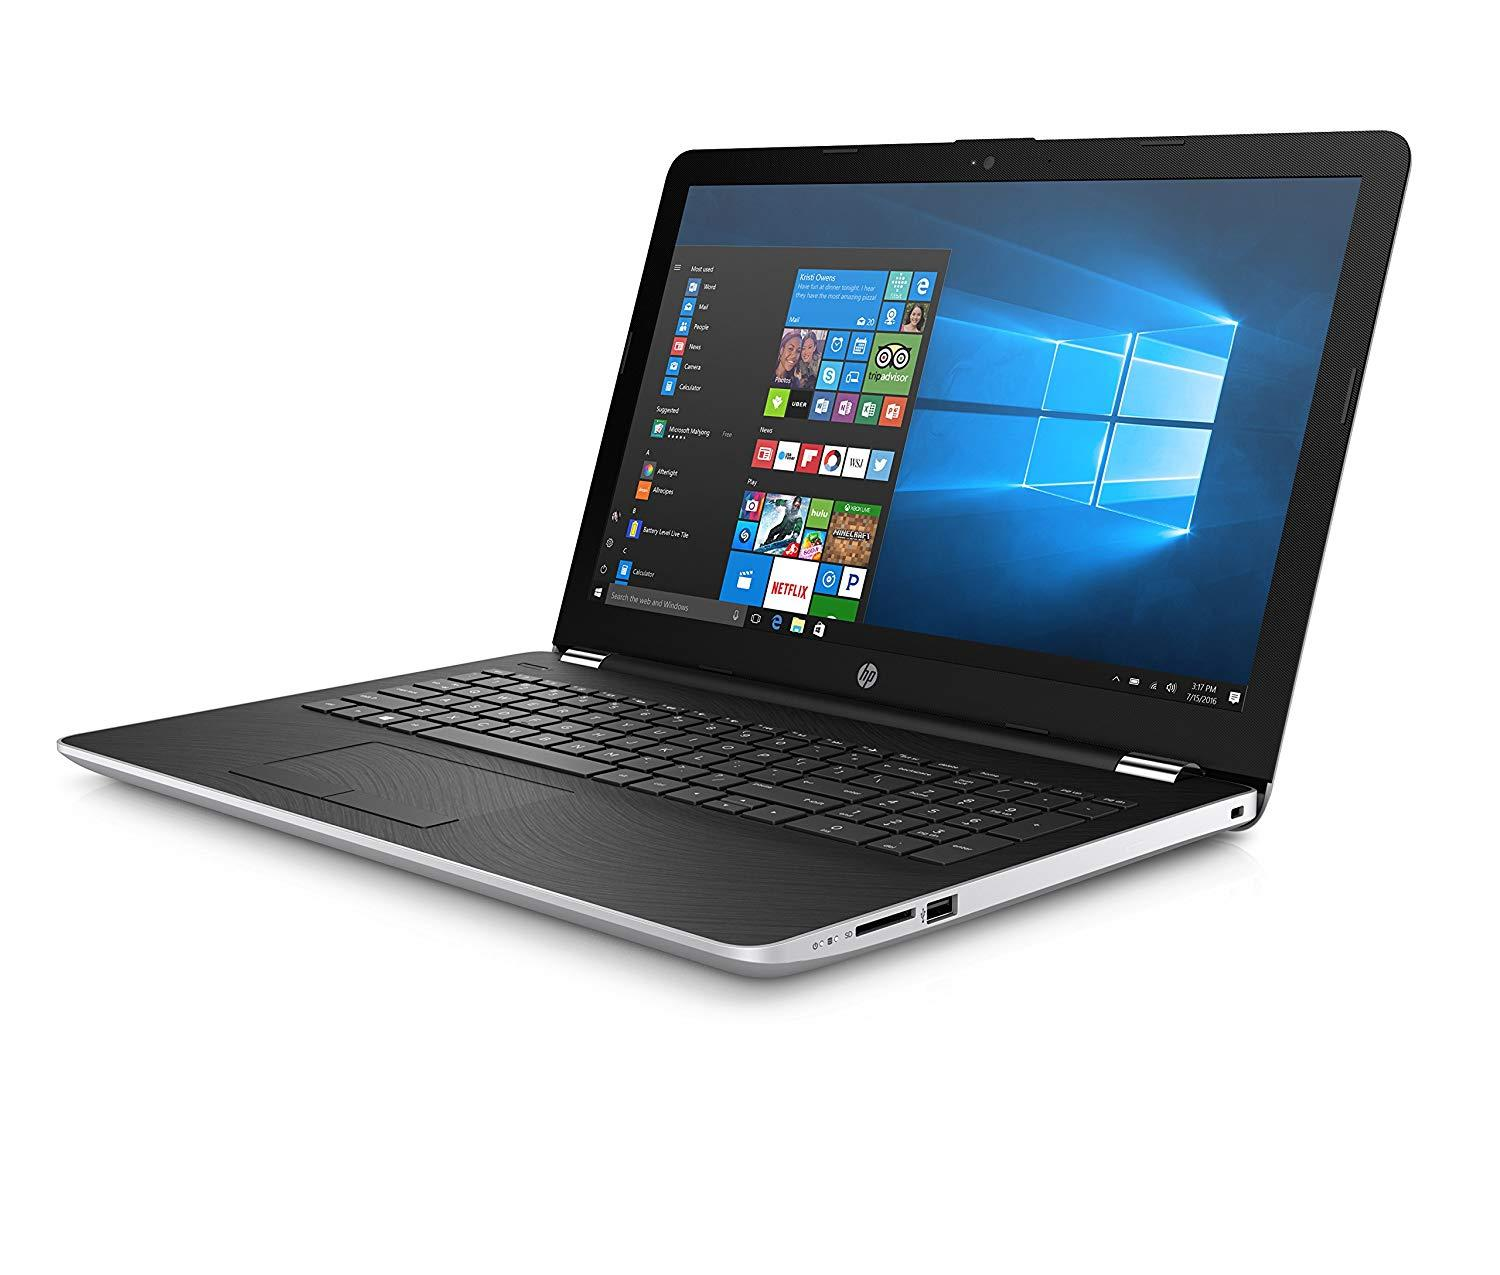 The Best Value Laptop: HP 15-bs104na